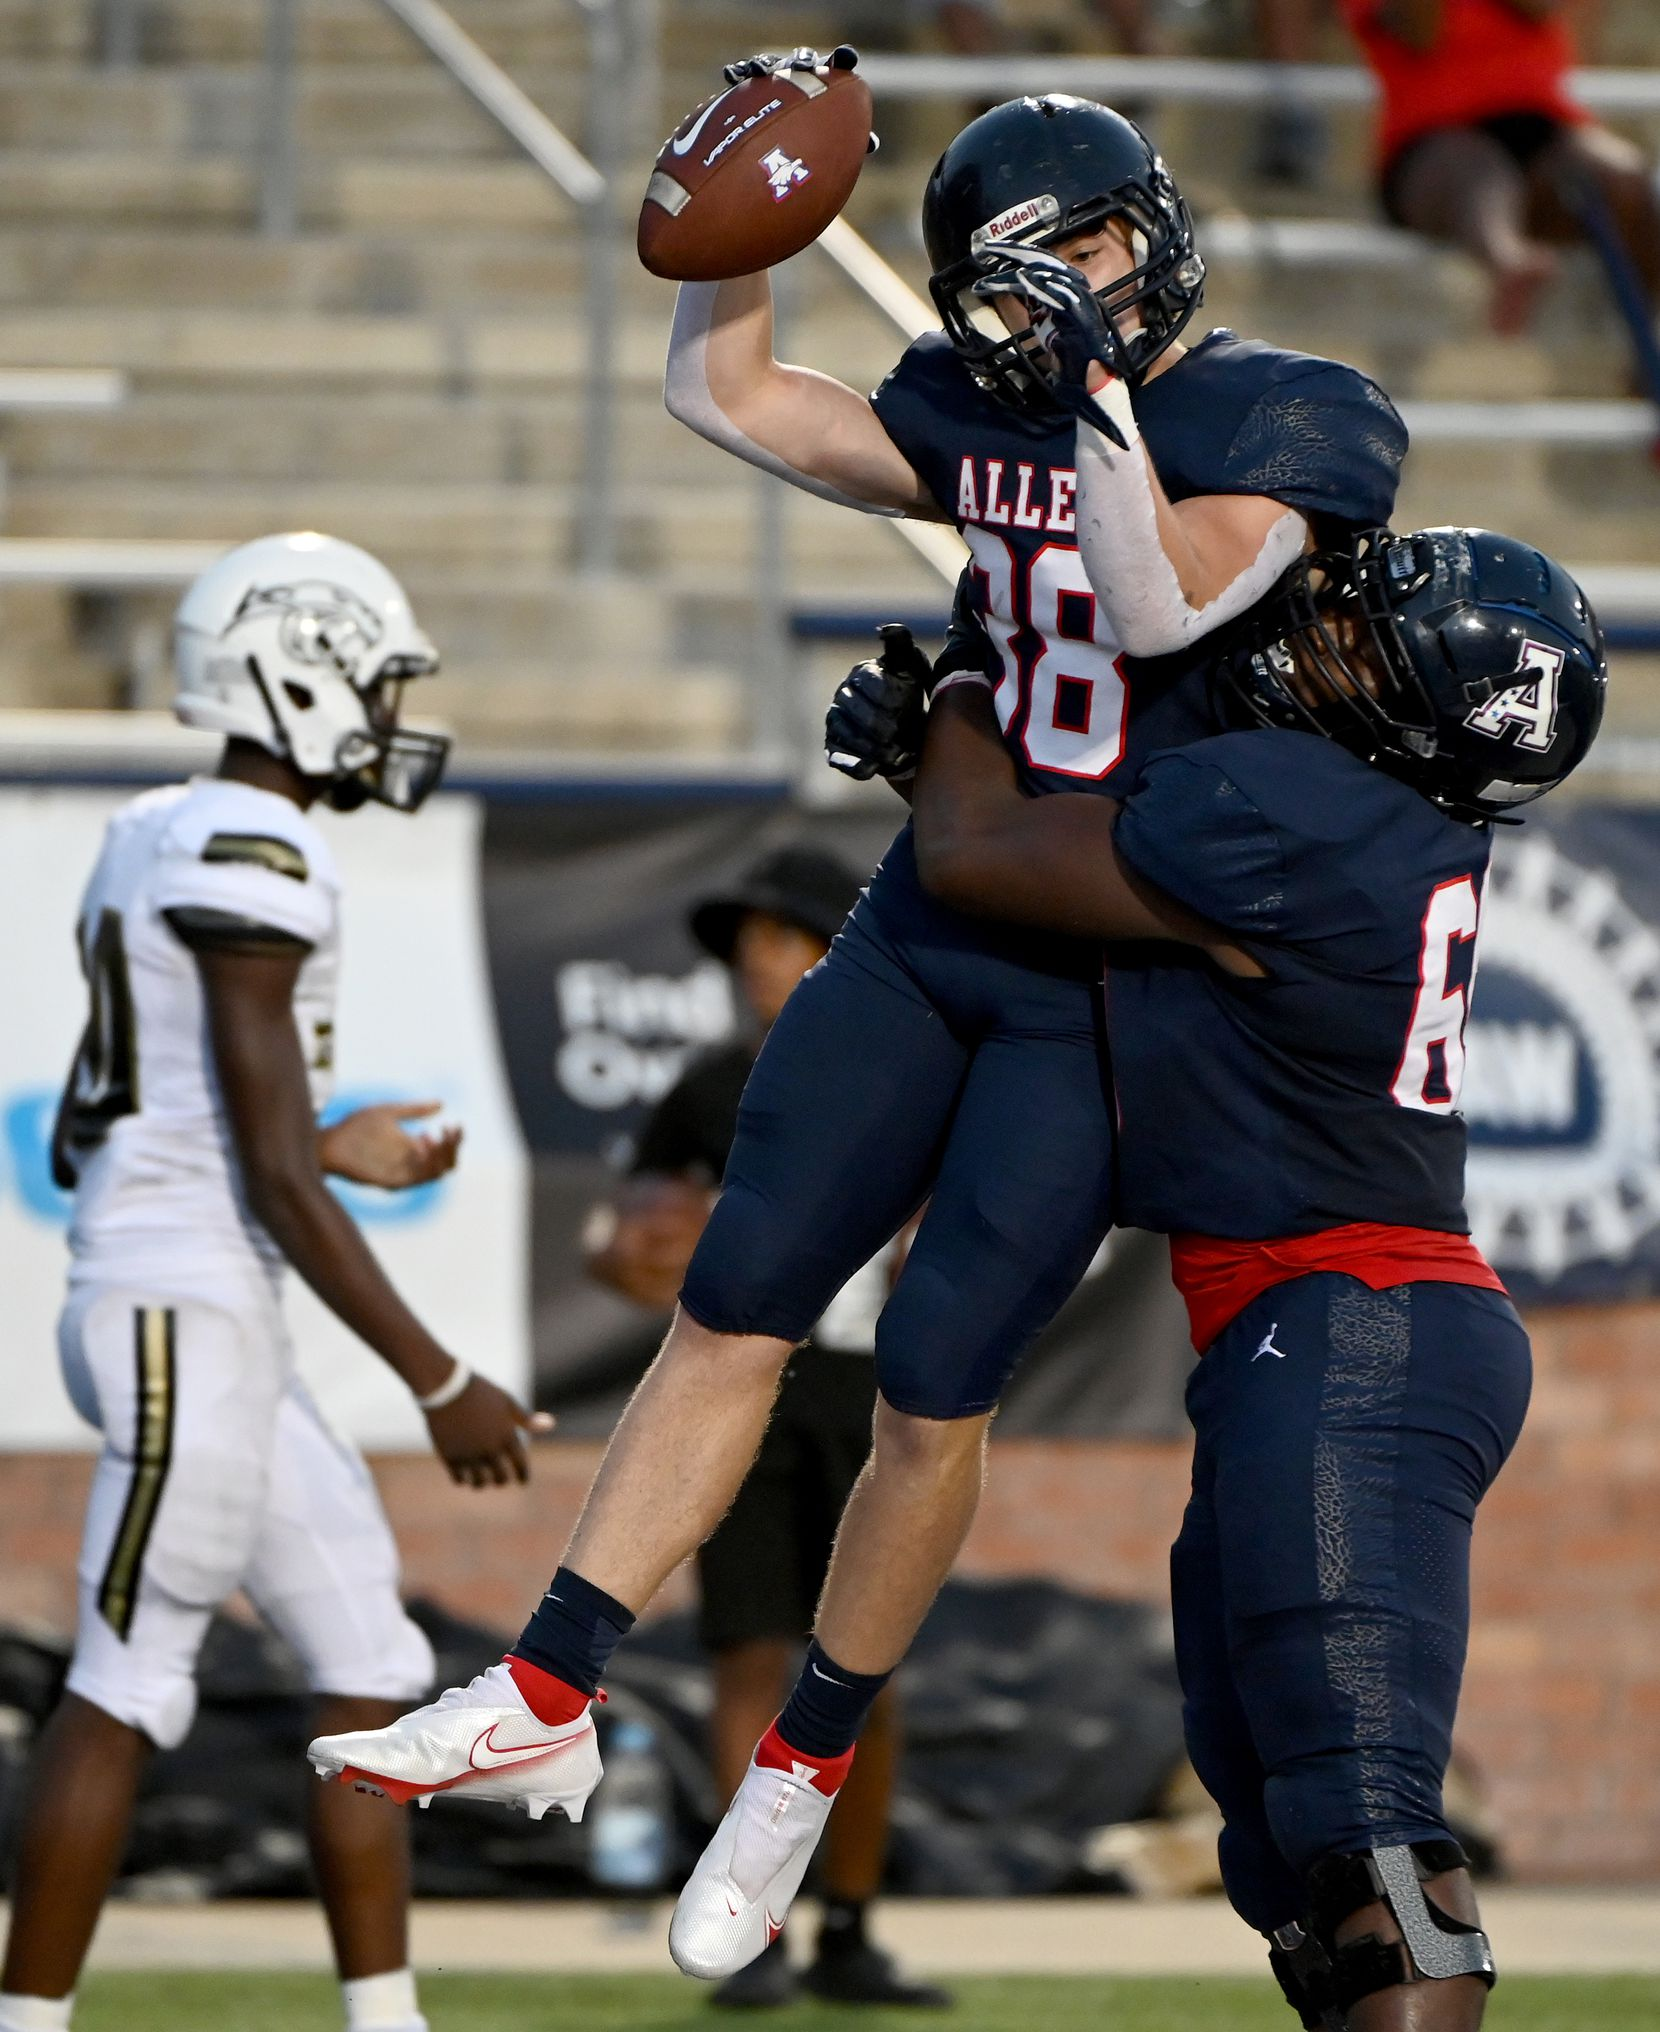 Allen's Brennan Harvey (38) and Antony Harris celebrate a touchdown in the first half during a high school football game between Plano East and Allen, Friday, Aug. 27, 2021, in Allen, Texas. (Matt Strasen/Special Contributor)